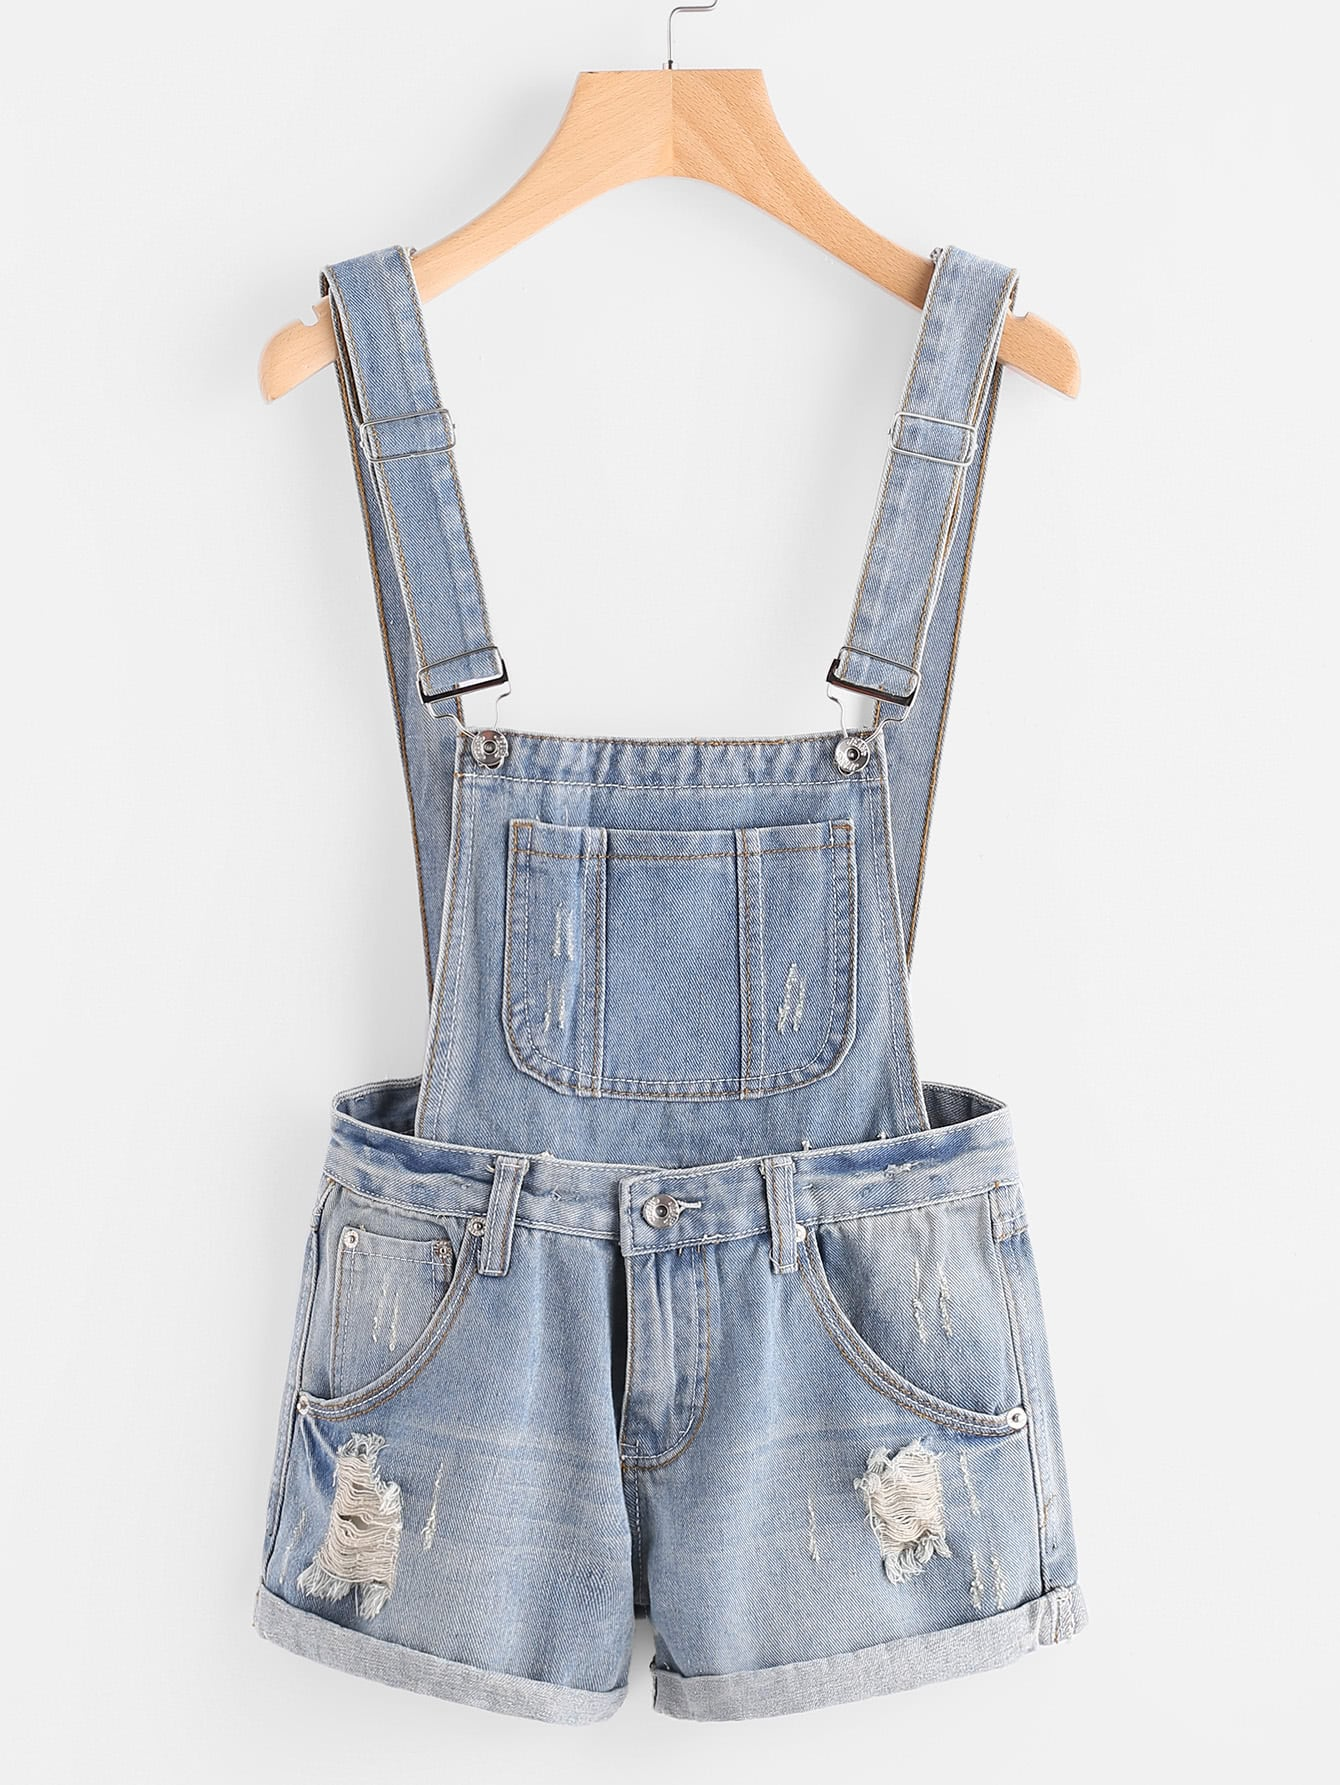 Distress Cuffed Denim Dungaree Shorts RJUM170504102